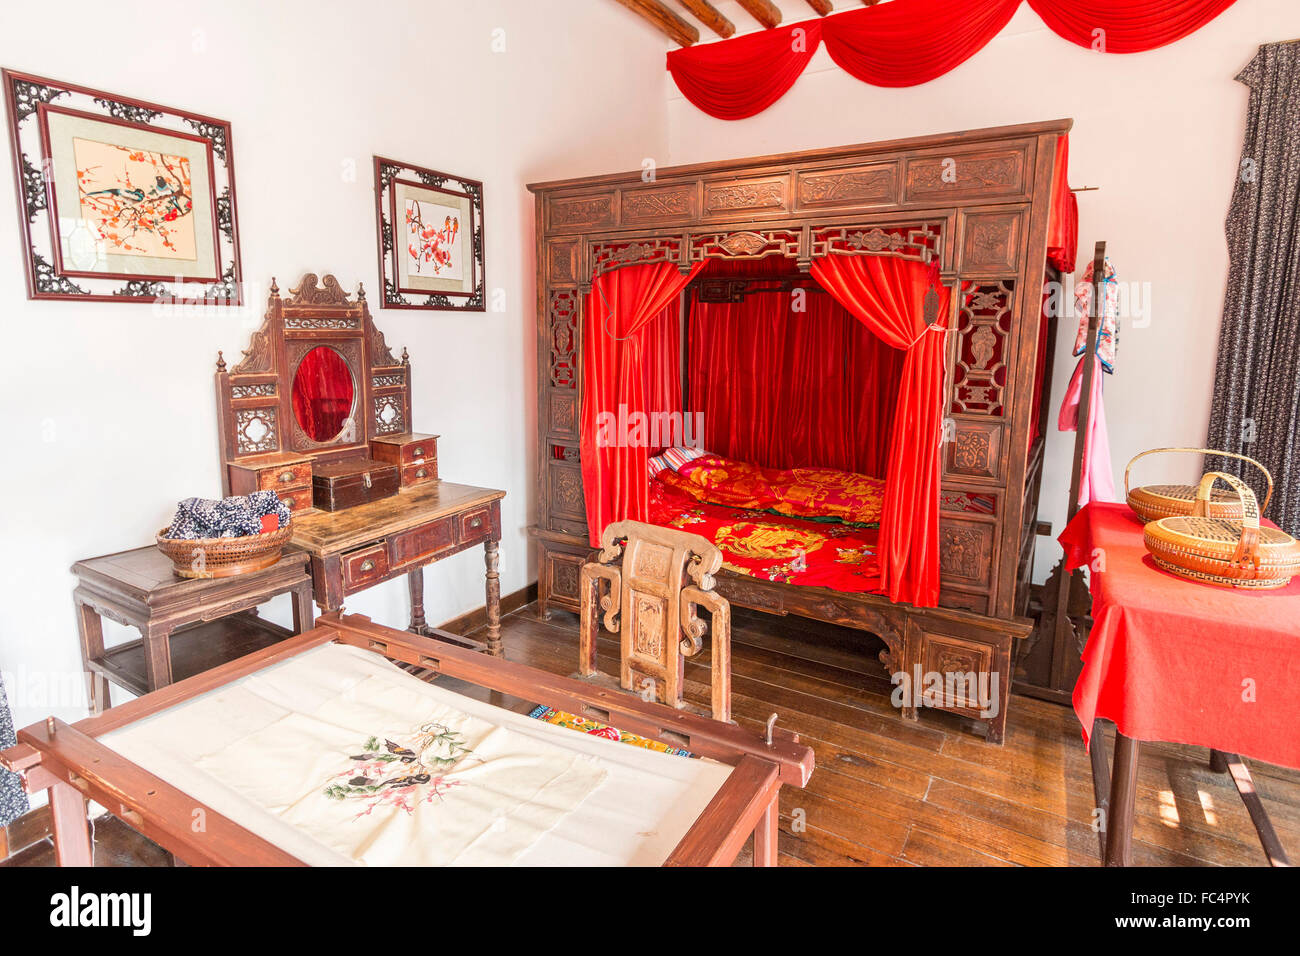 Re-creation of rich family's bedroom at XiXi National Wetland Park near Hangzhou, China - Stock Image